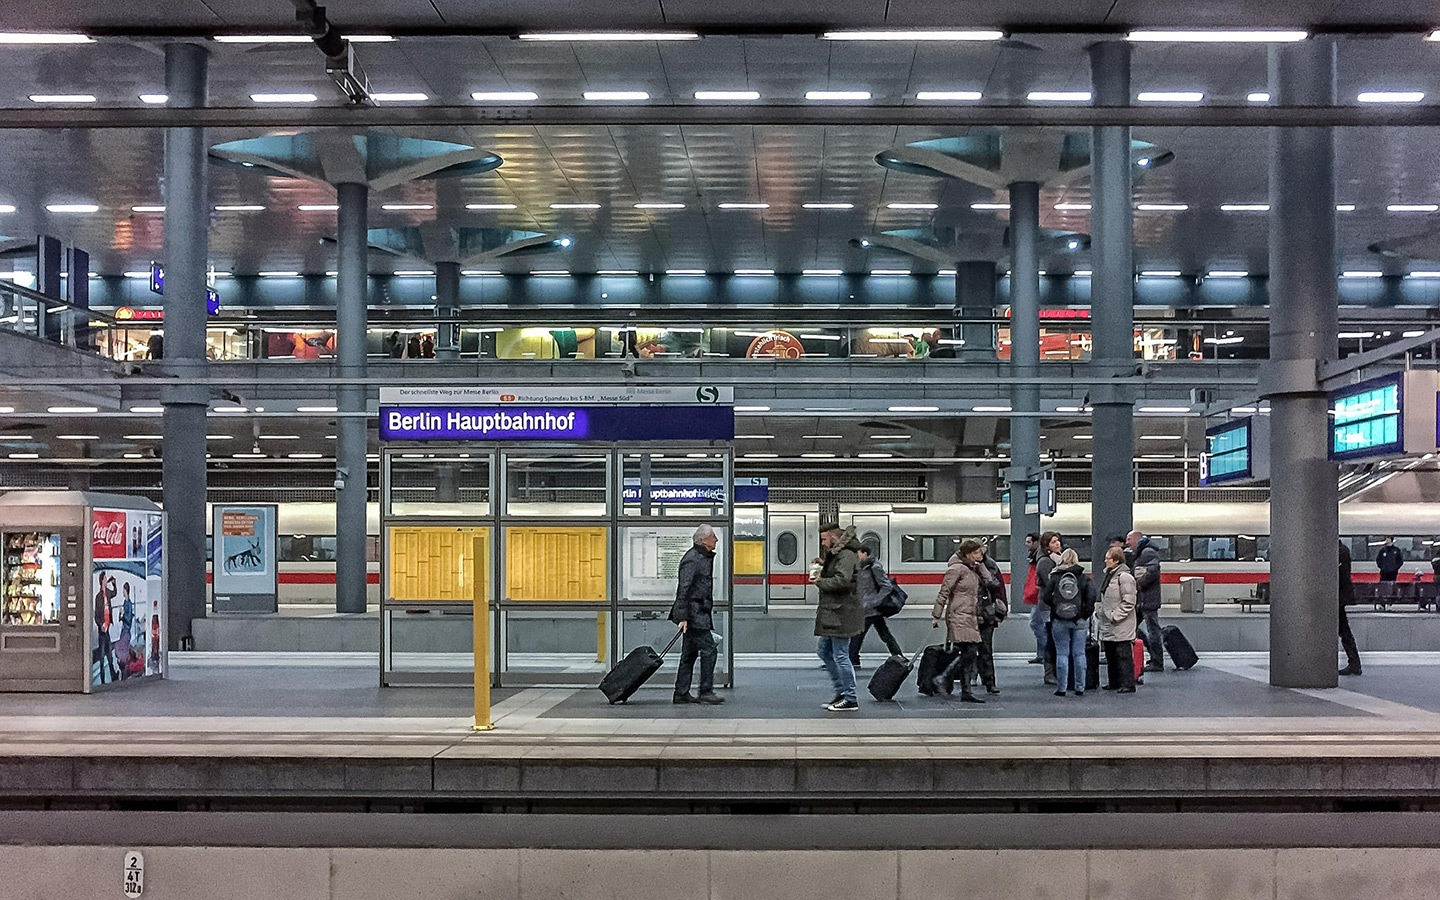 Berlin Hauptbahnhof main train station